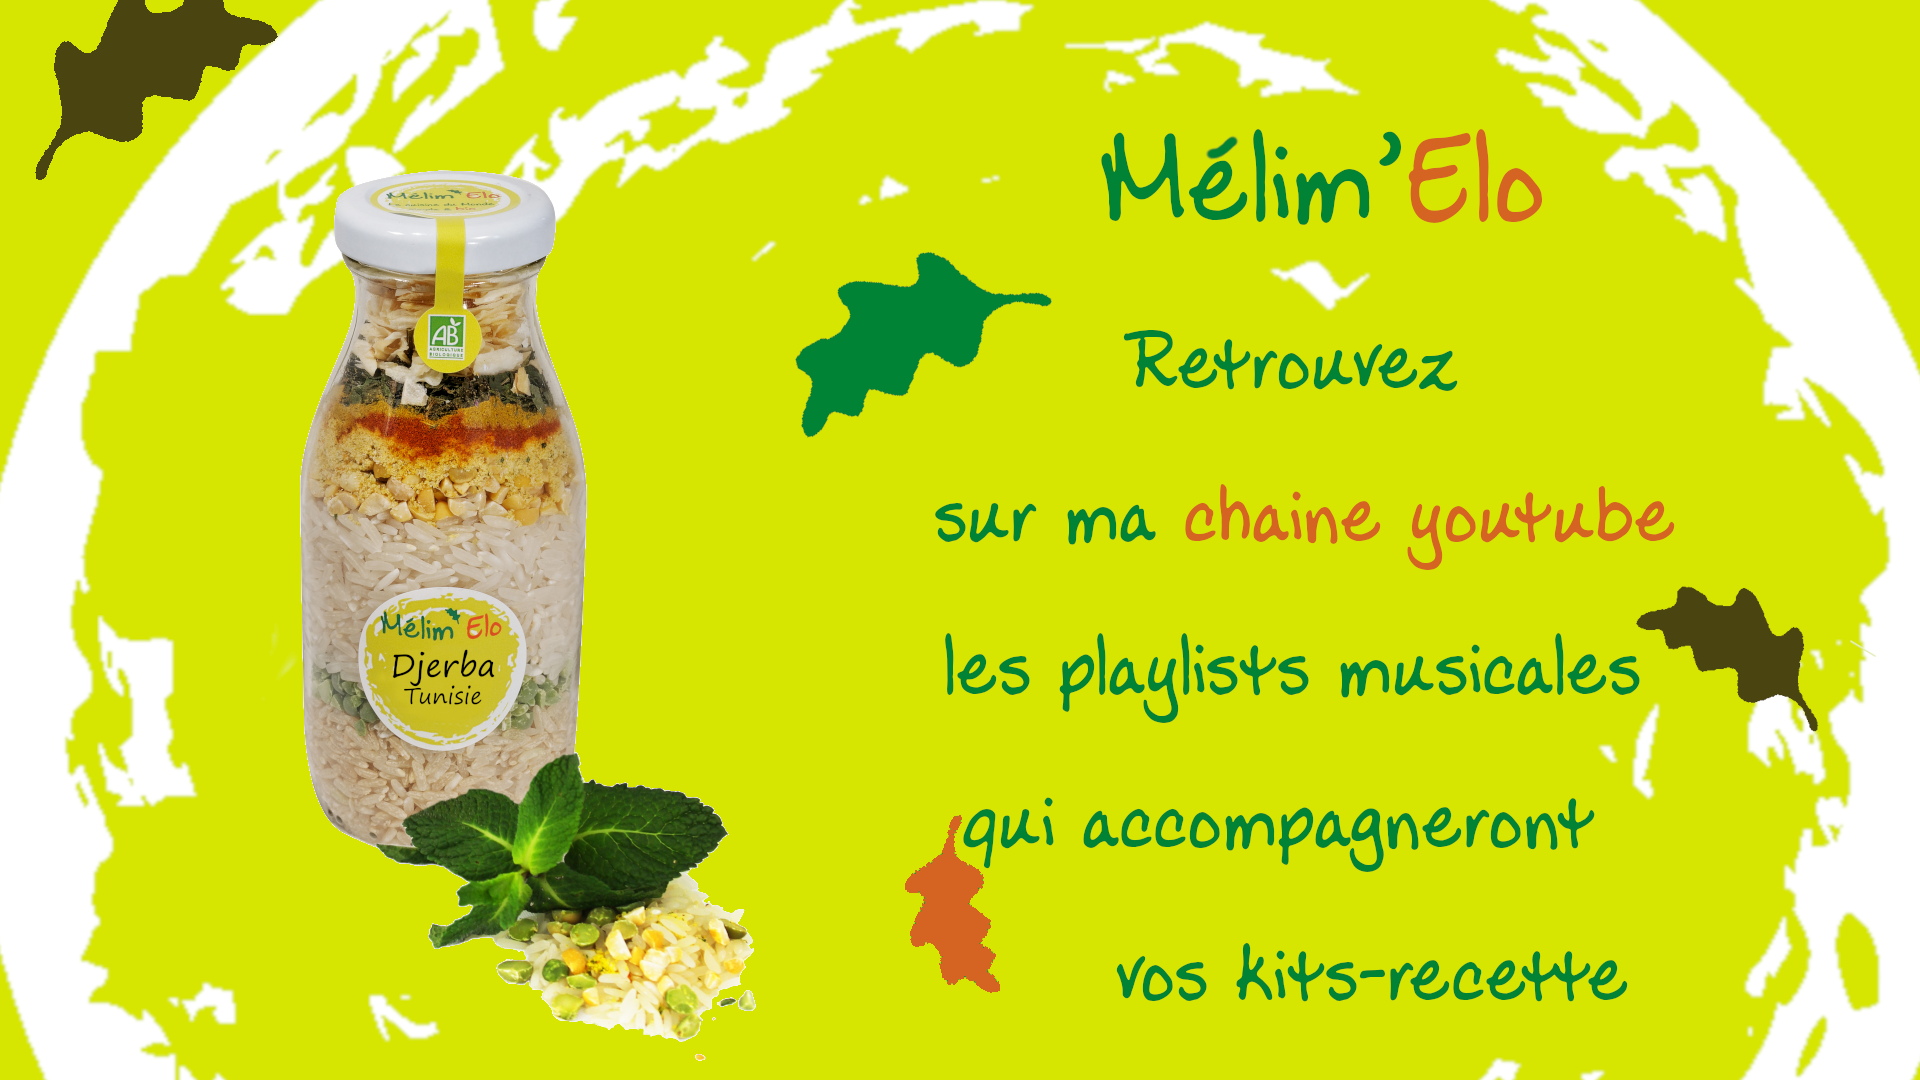 Chaîne Youtube mes playlists musicales